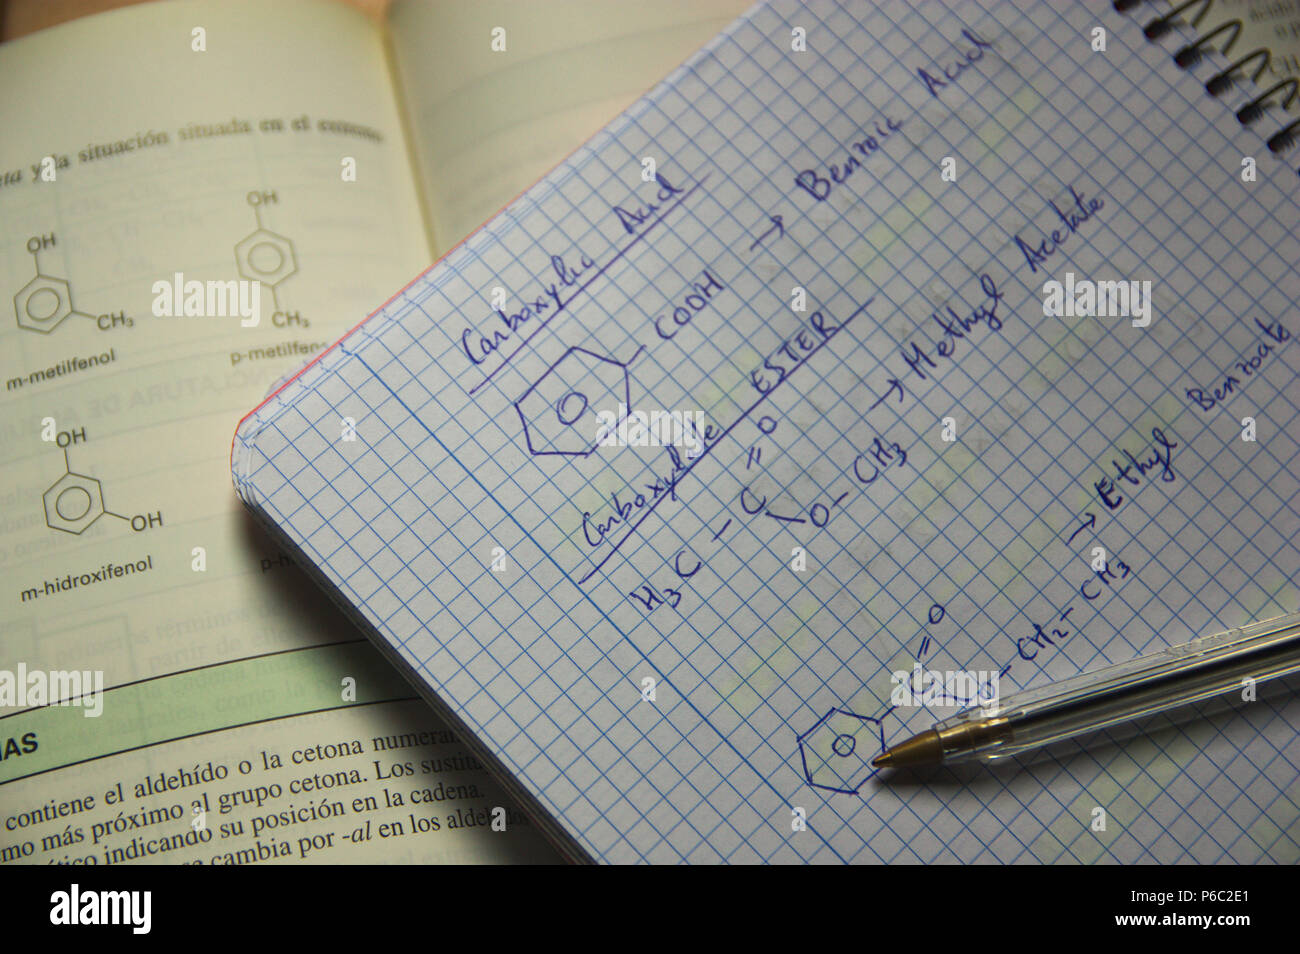 formulas of organic chemistry in a student's class notebook. Stock Photo